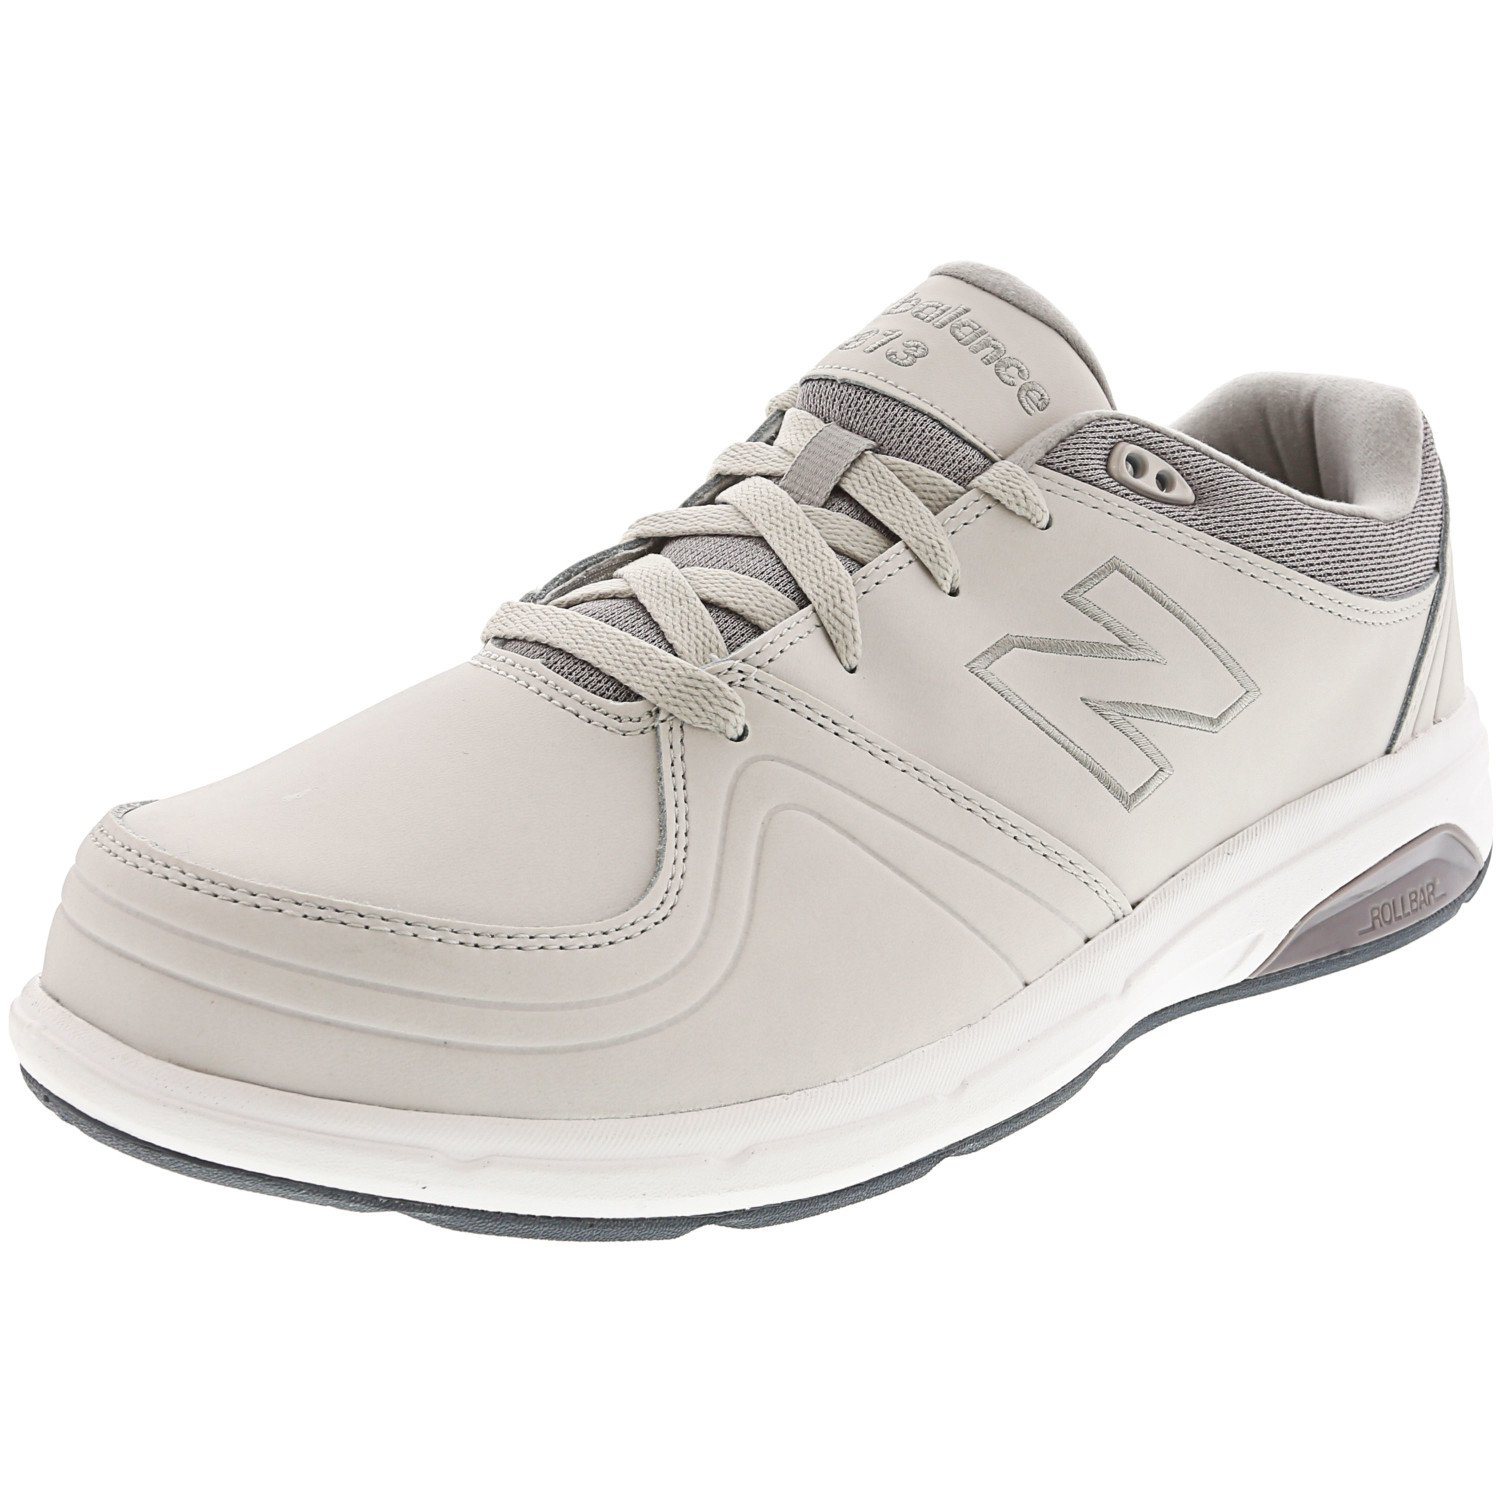 New Balance Women's 813 Shoes Off White